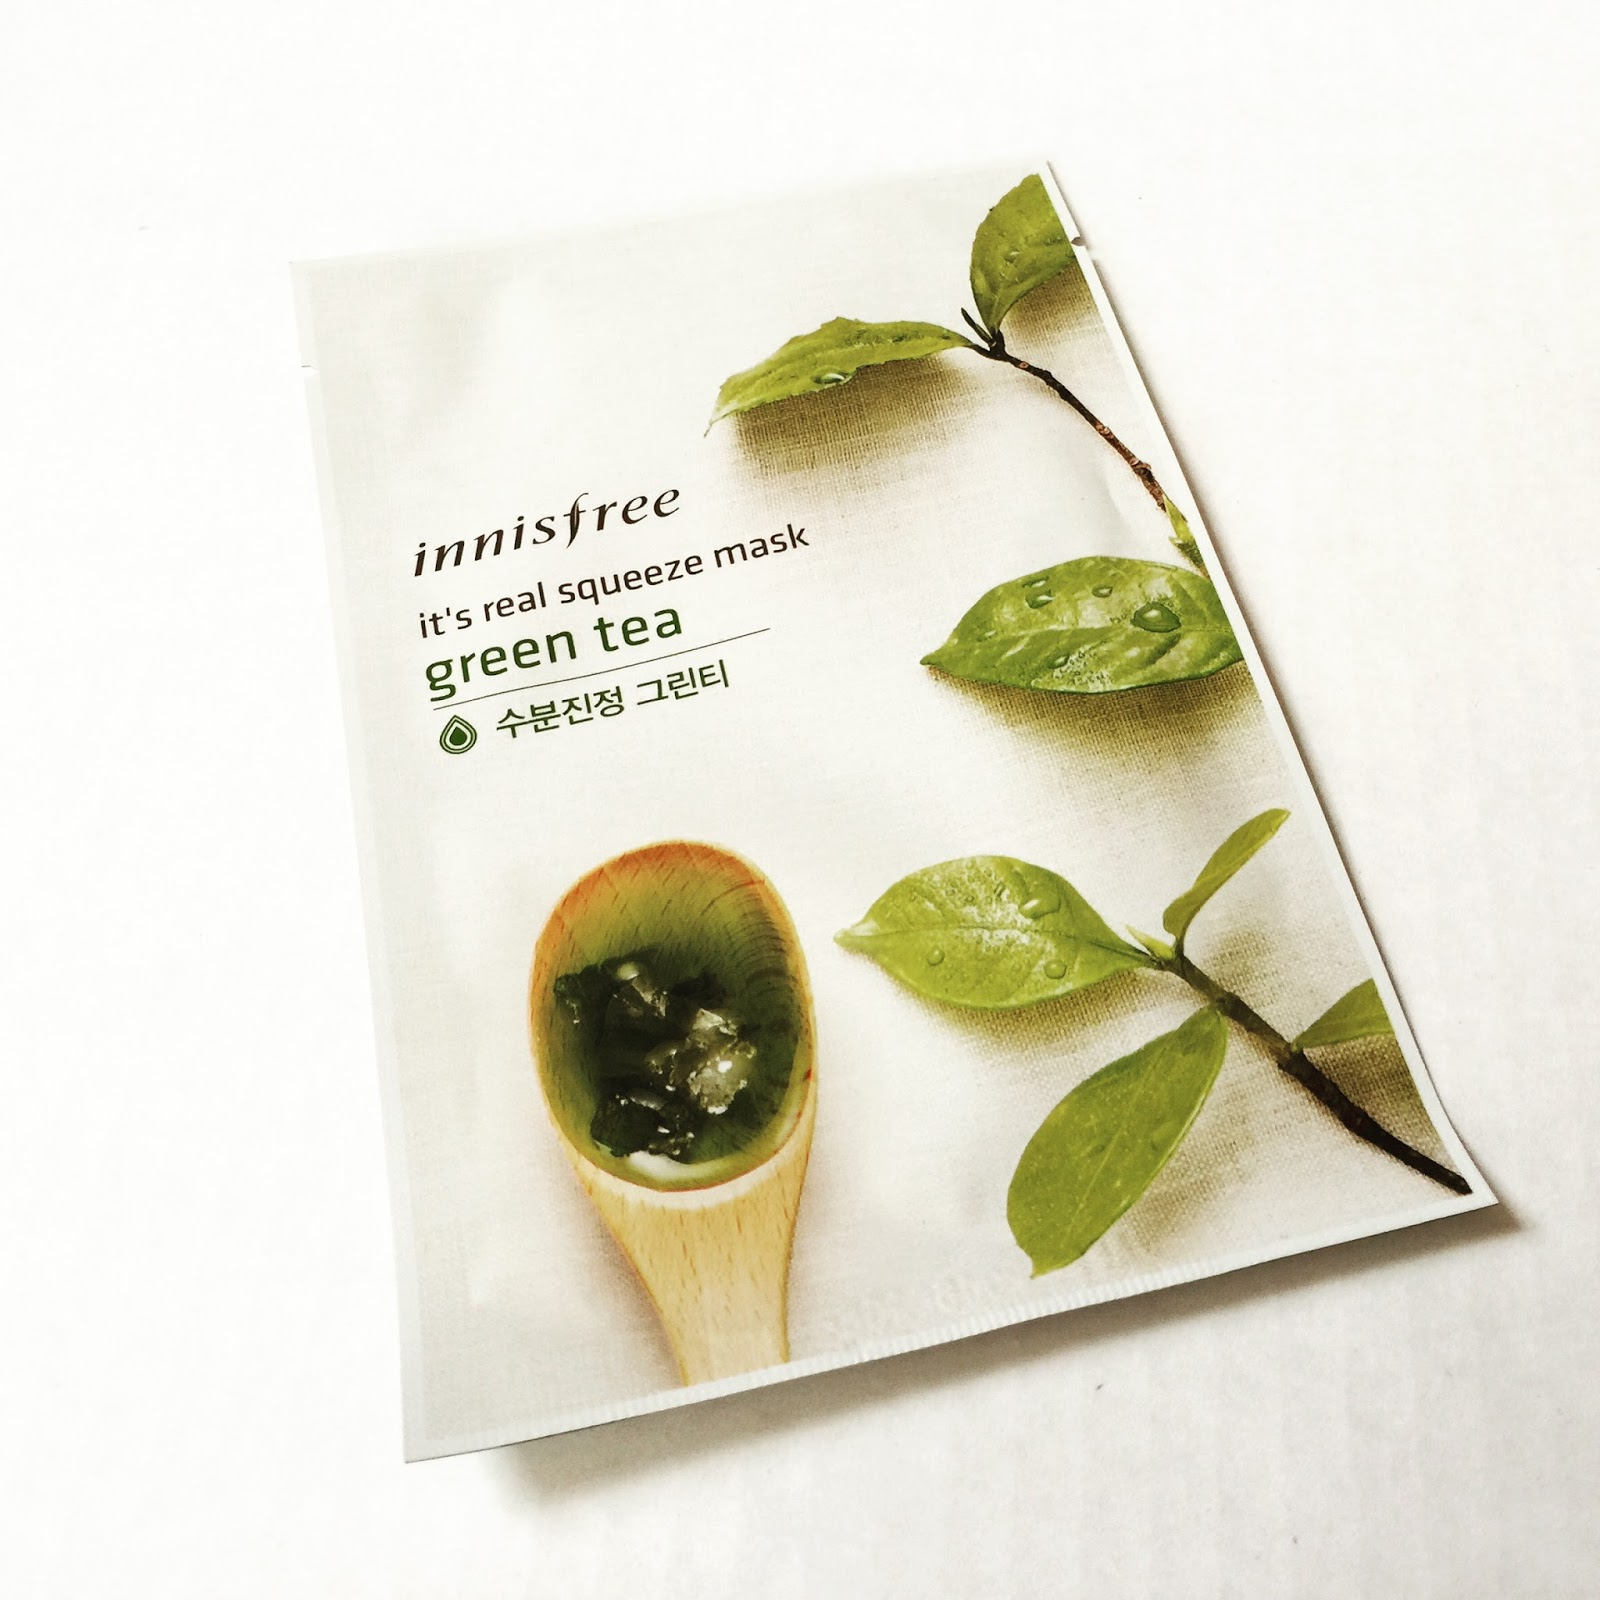 INNISFREE IT'S A REAL SQUEEZE MASK - GREEN TEA